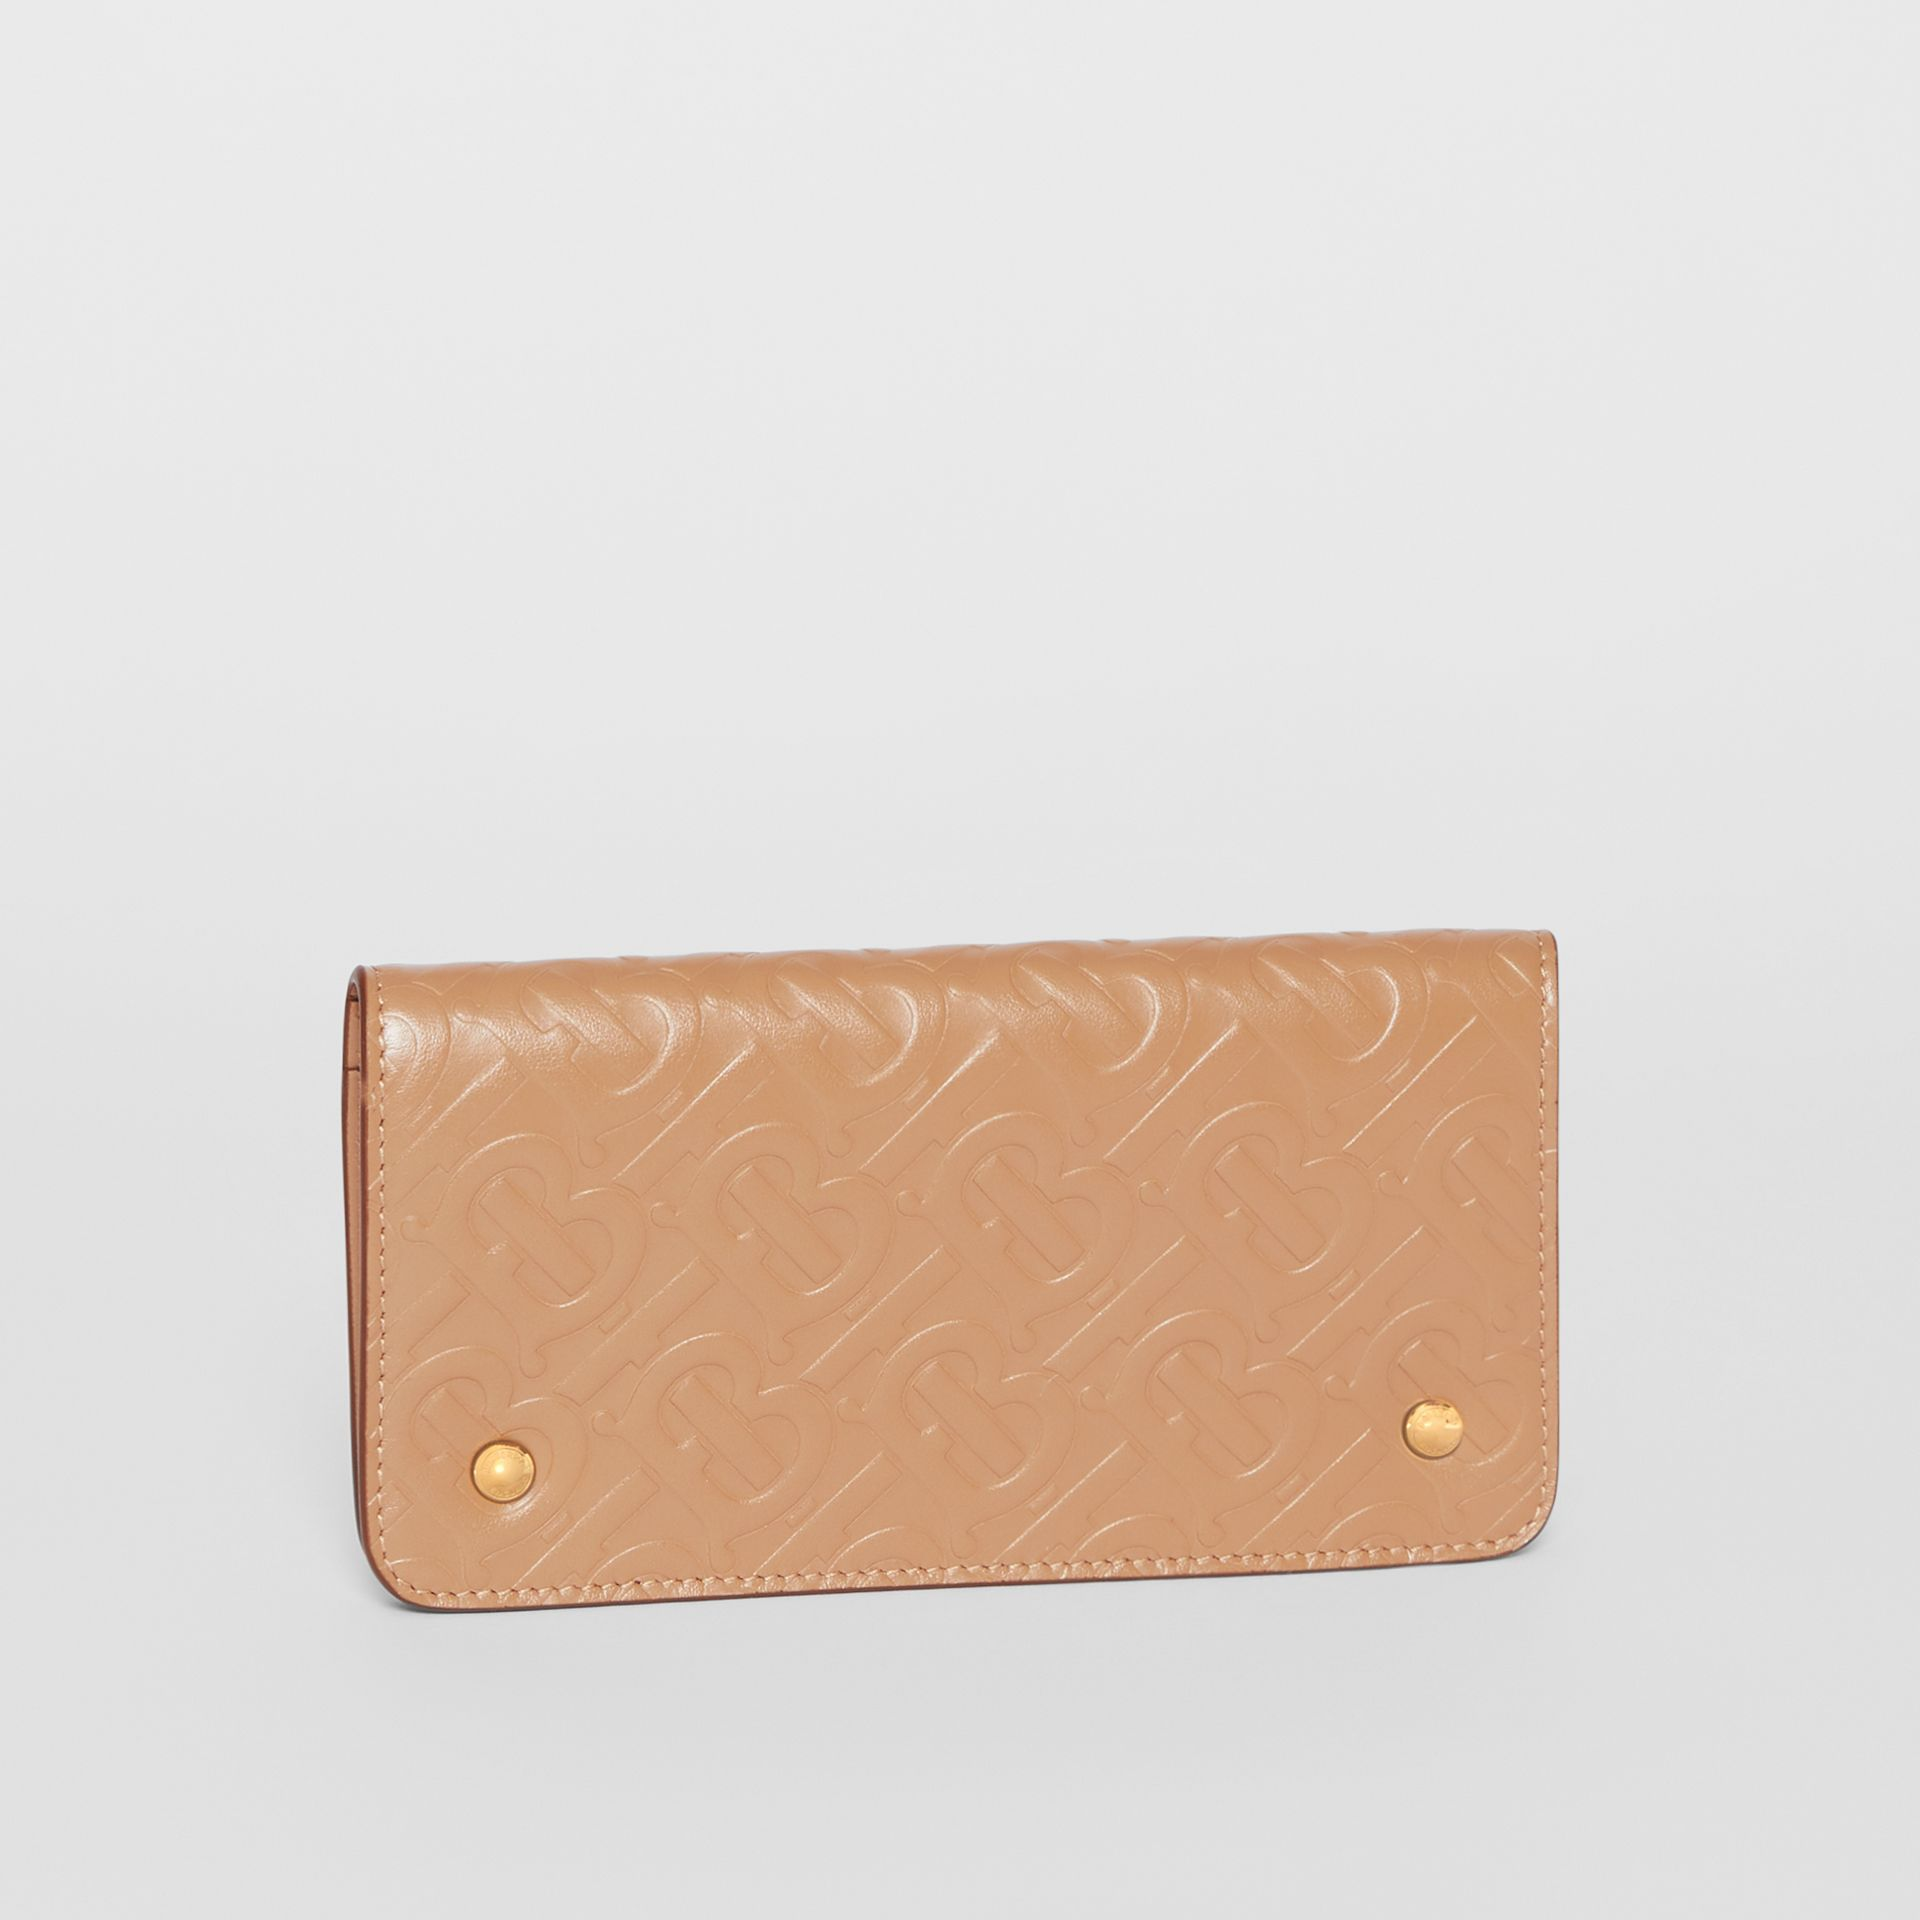 Monogram Leather Phone Wallet in Light Camel | Burberry United Kingdom - gallery image 4